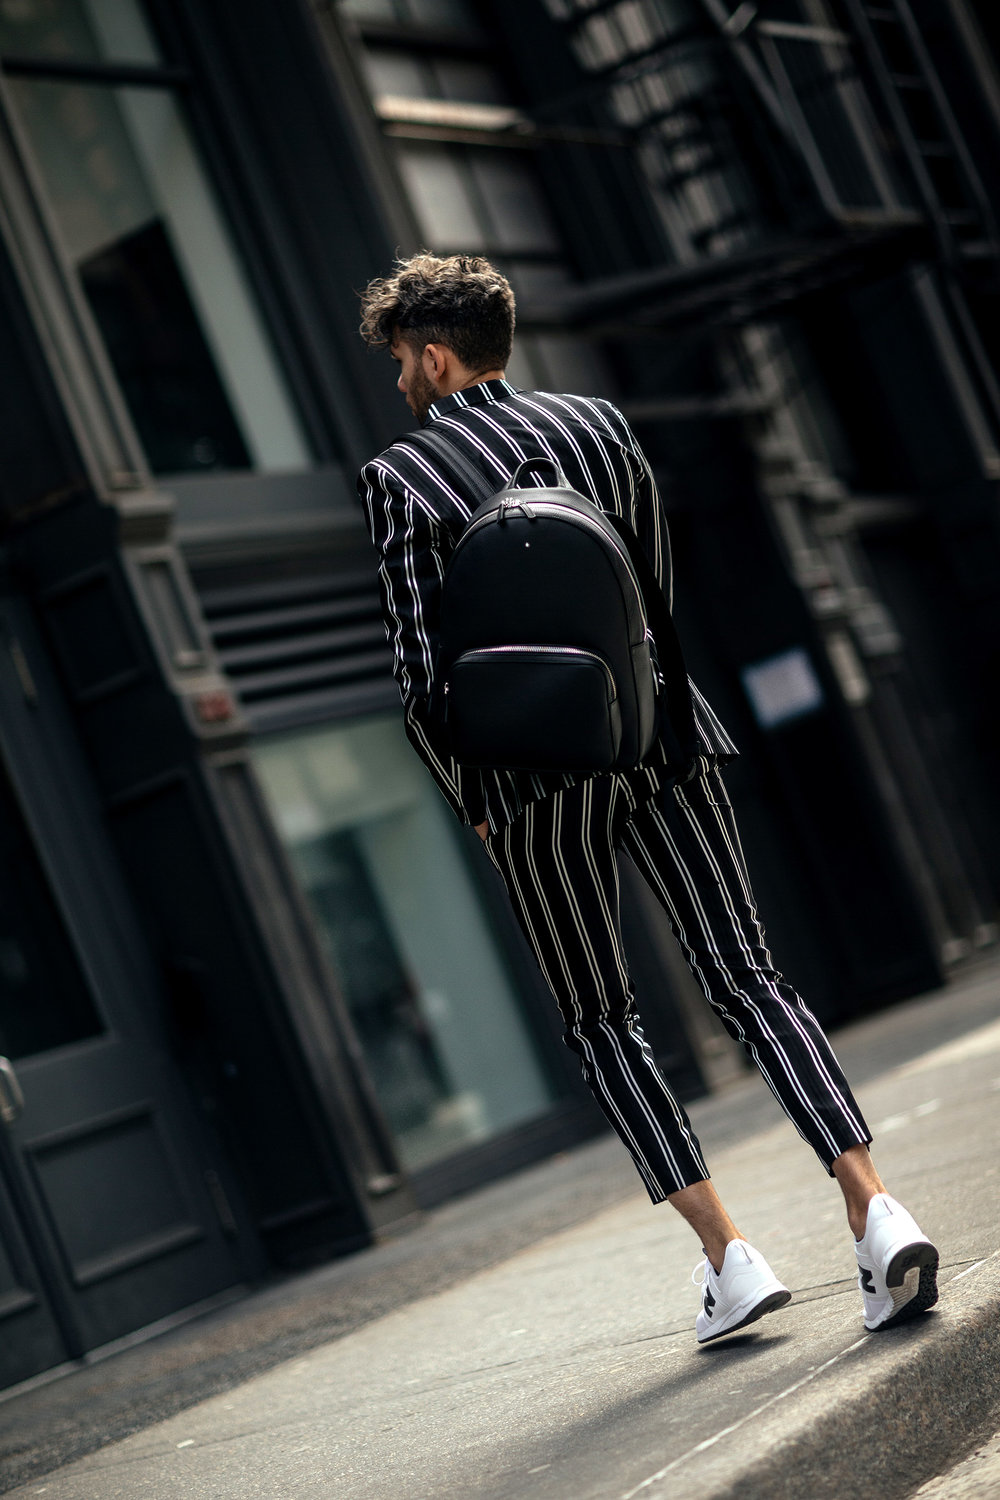 Summer Fashion Inspiration, June Fashion, Men's Custom Suit, Fashion From New York, Men's New York Fashion, New York Spring Style, New York Summer Style, New York Fashion Blogger, Talun Zeitoun